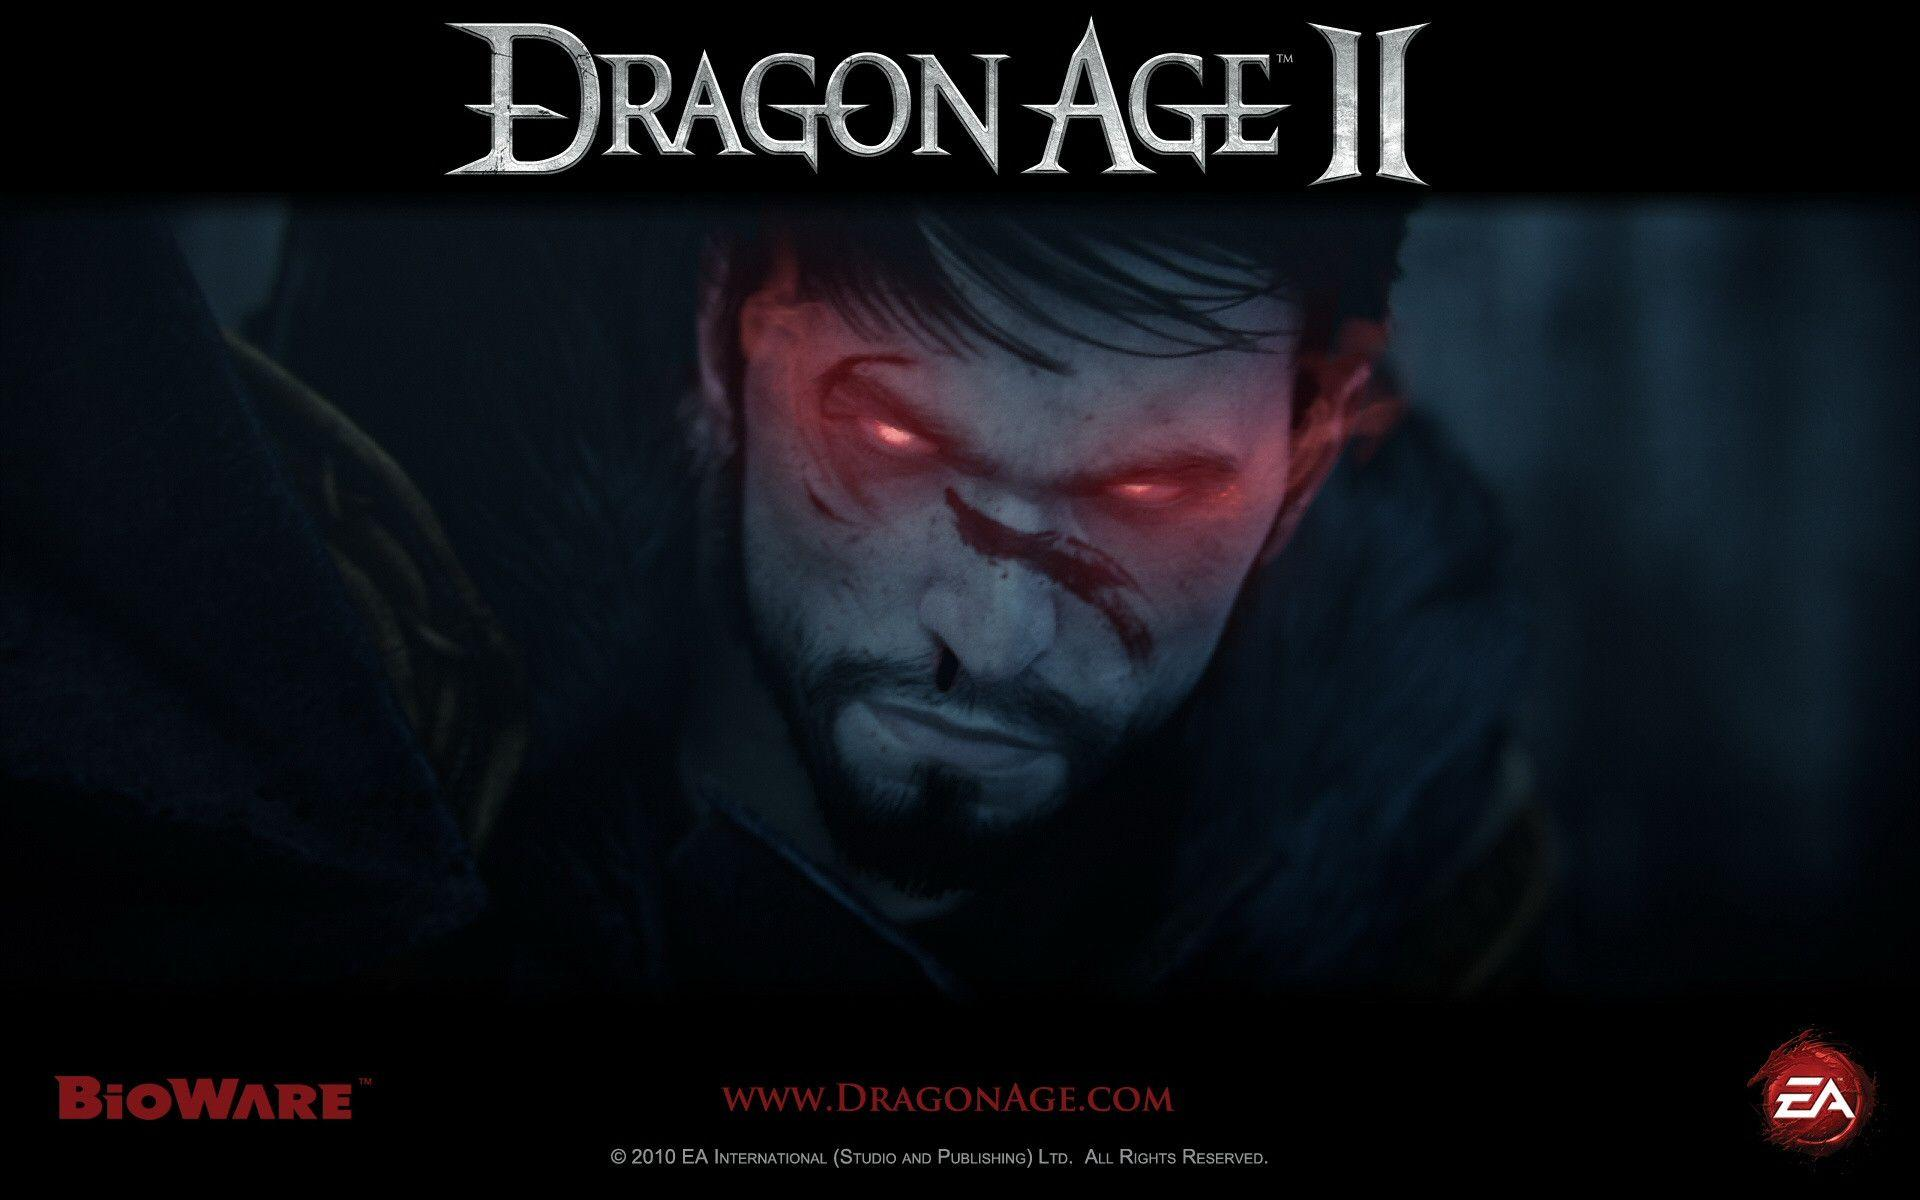 Dragon Age 2 Wallpapers - Full HD wallpaper search